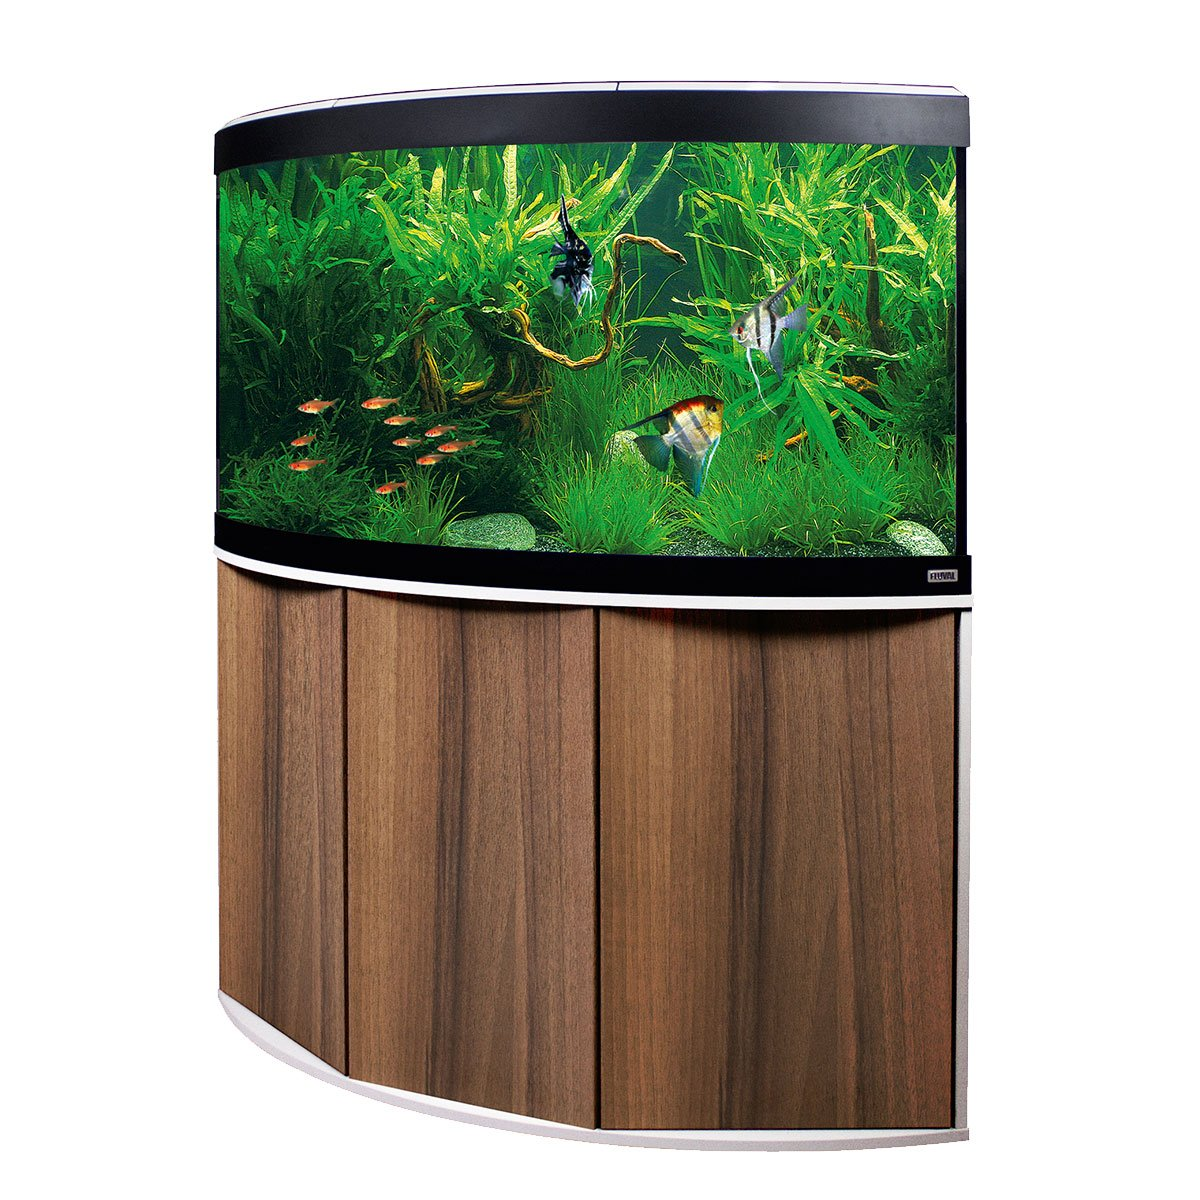 fluval panoramaaquarium mit led beleuchtung venezia 350. Black Bedroom Furniture Sets. Home Design Ideas